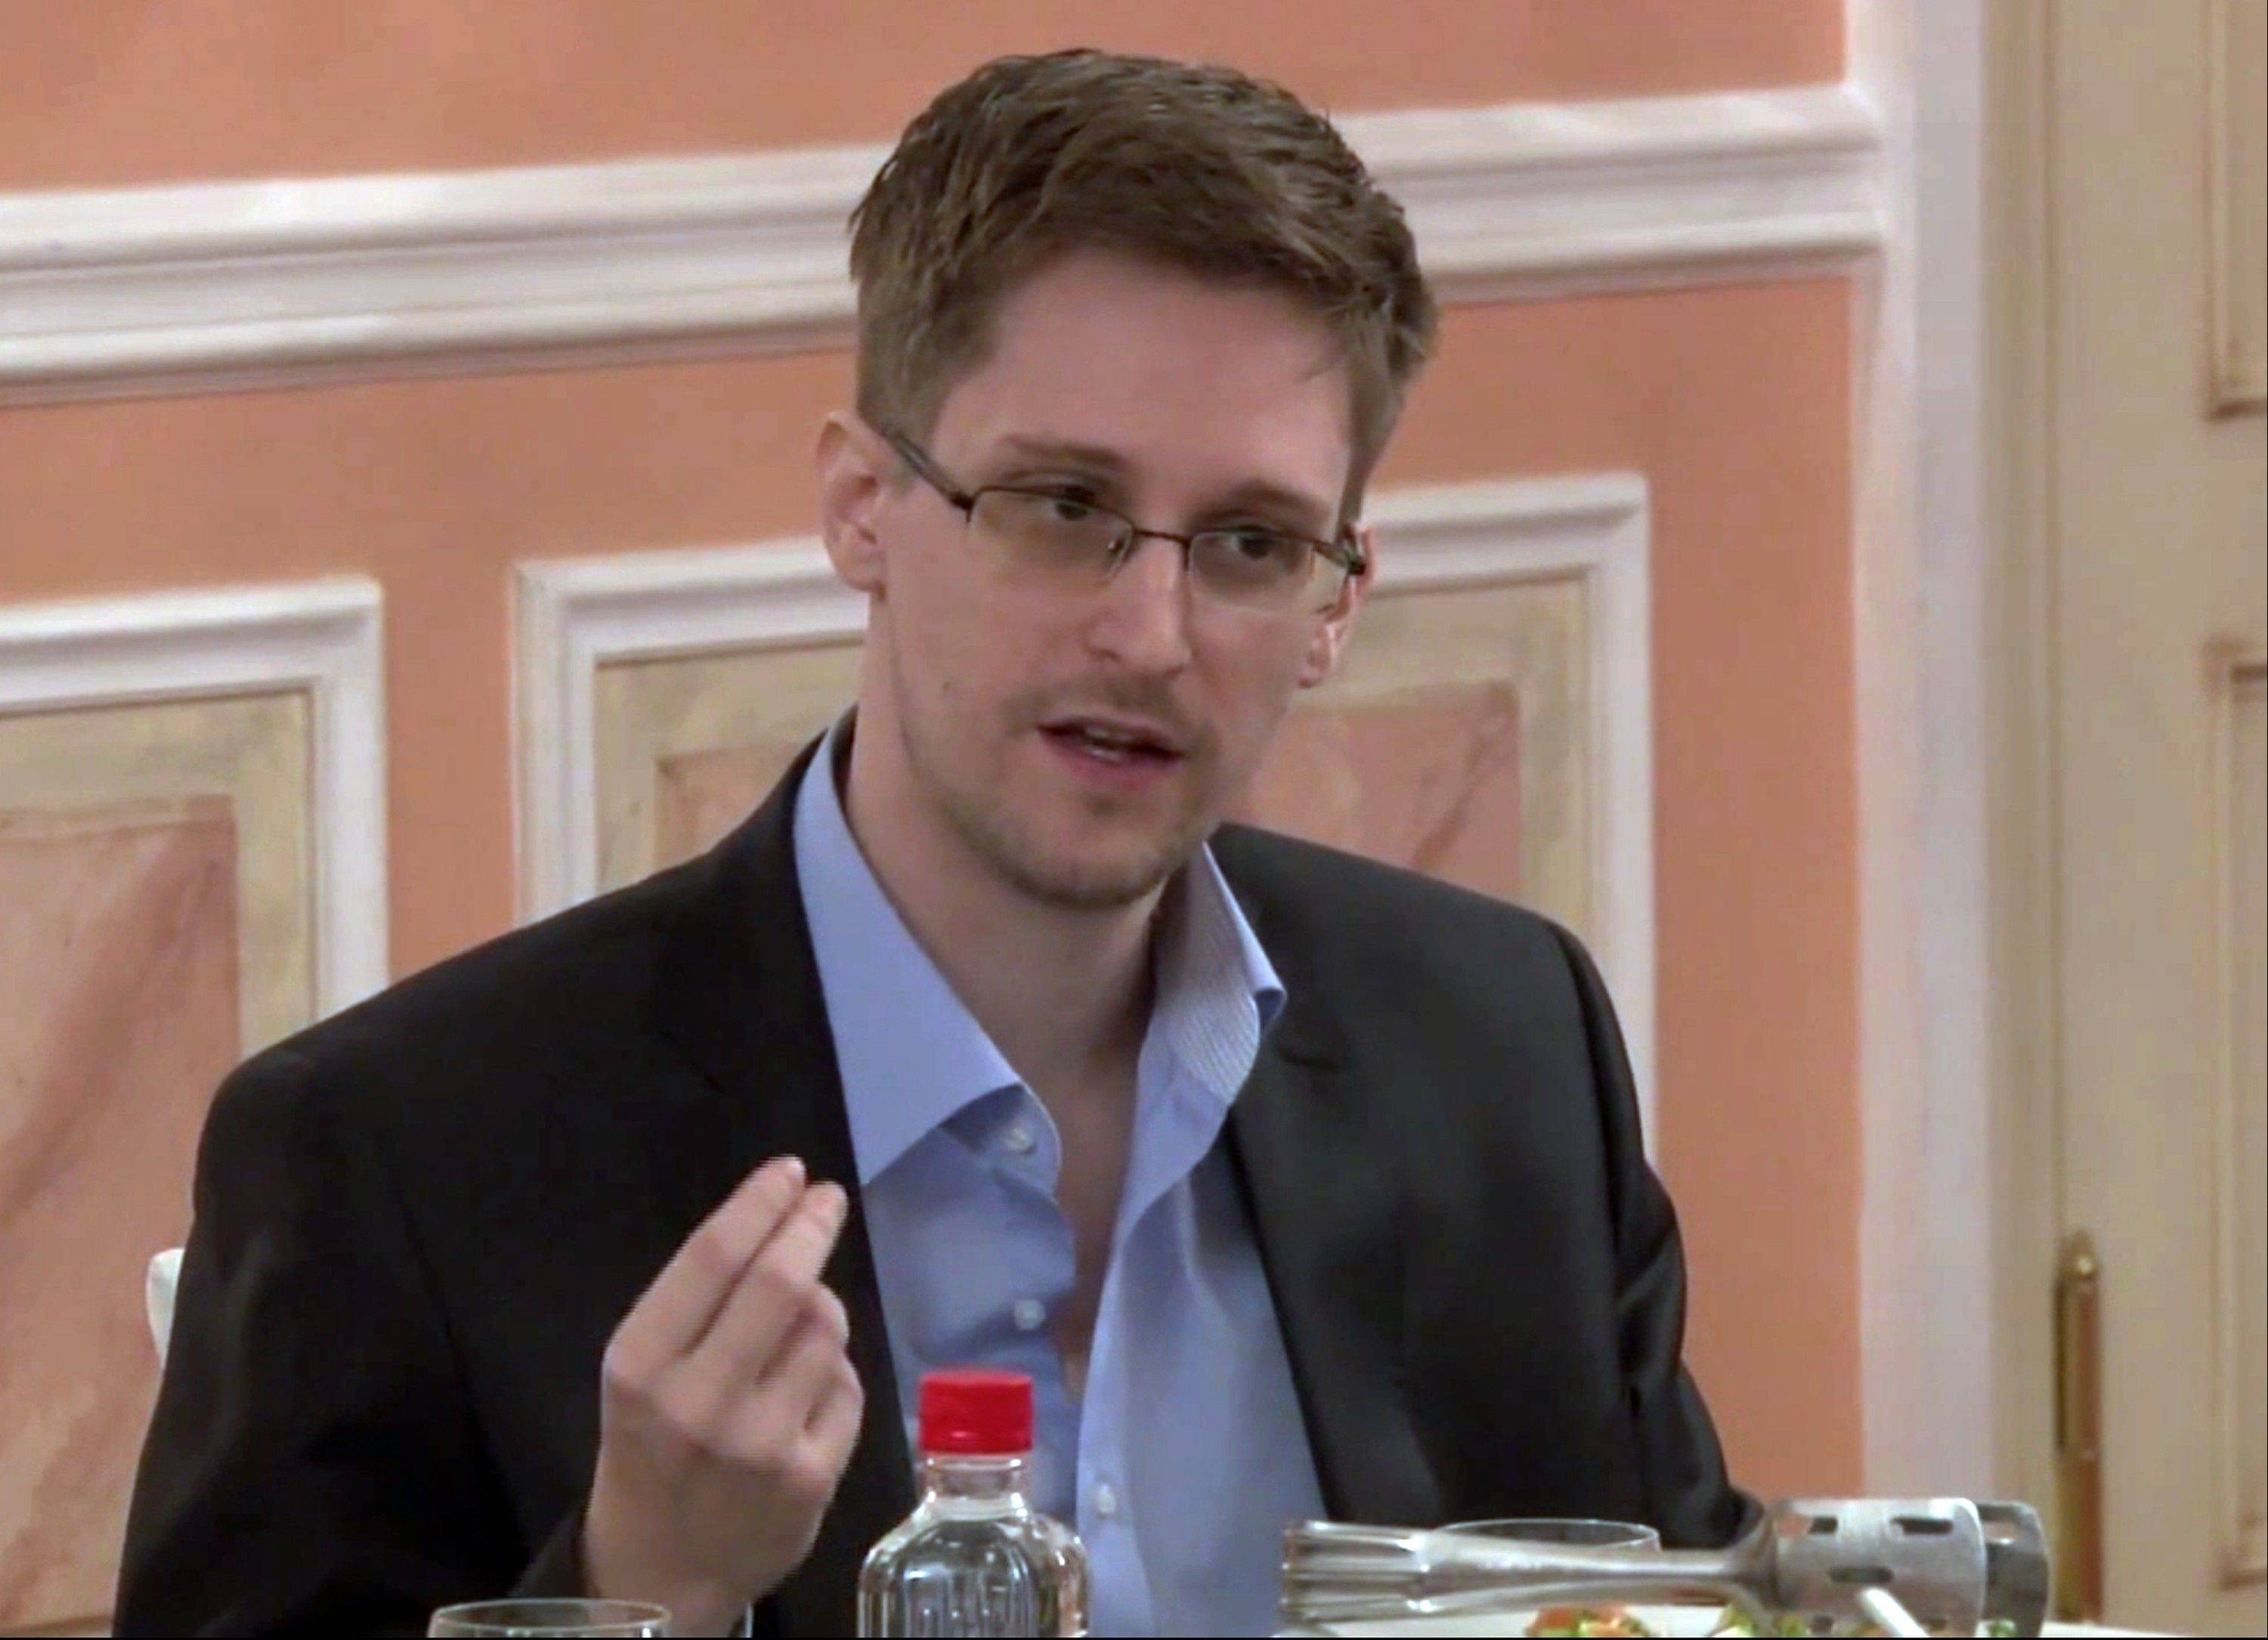 Former National Security Agency systems analyst Edward Snowden said via e-mail on Thursday that whistler-blower laws in the U.S. cannot preclude the possibility of him going to prison.